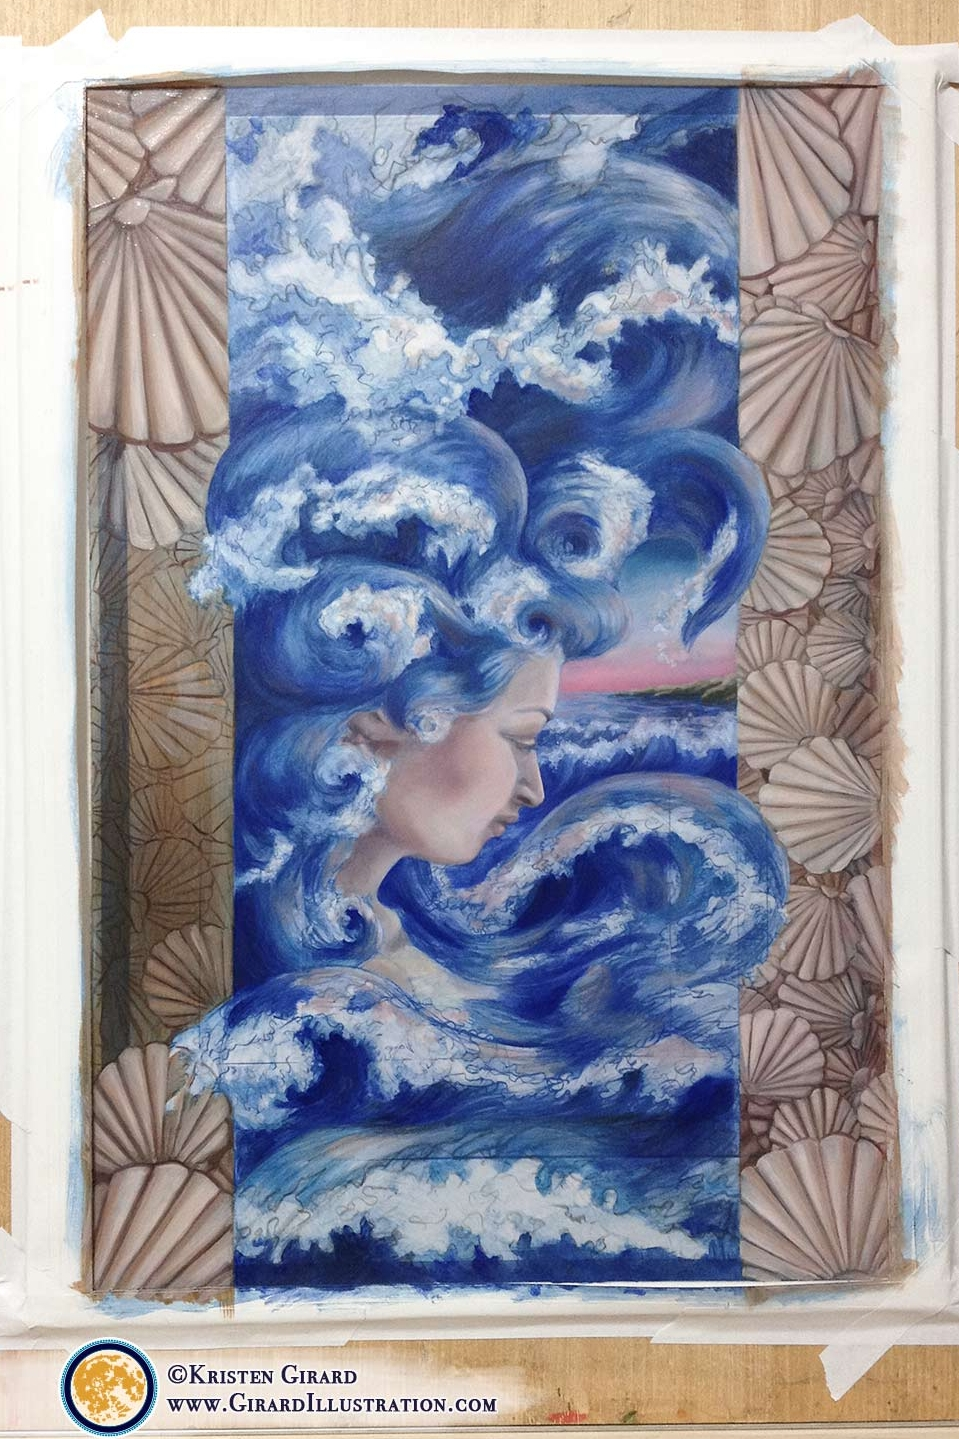 A water goddess comes to life as dawn kisses the sky in this nature inspired illustration full of ocean waves, sea shells, and natural magic.    Behind the scenes look at painting  Water Magic from the Art for Creation Collection  © by artist Kristen Girard.  To see the finished goddess of water painting click here.  Beautiful limited edition fine art prints are available to bring the magic of the ocean to your home in the  Art & Storie Shop .  Click here to explore framed and unframed goddess art prints.